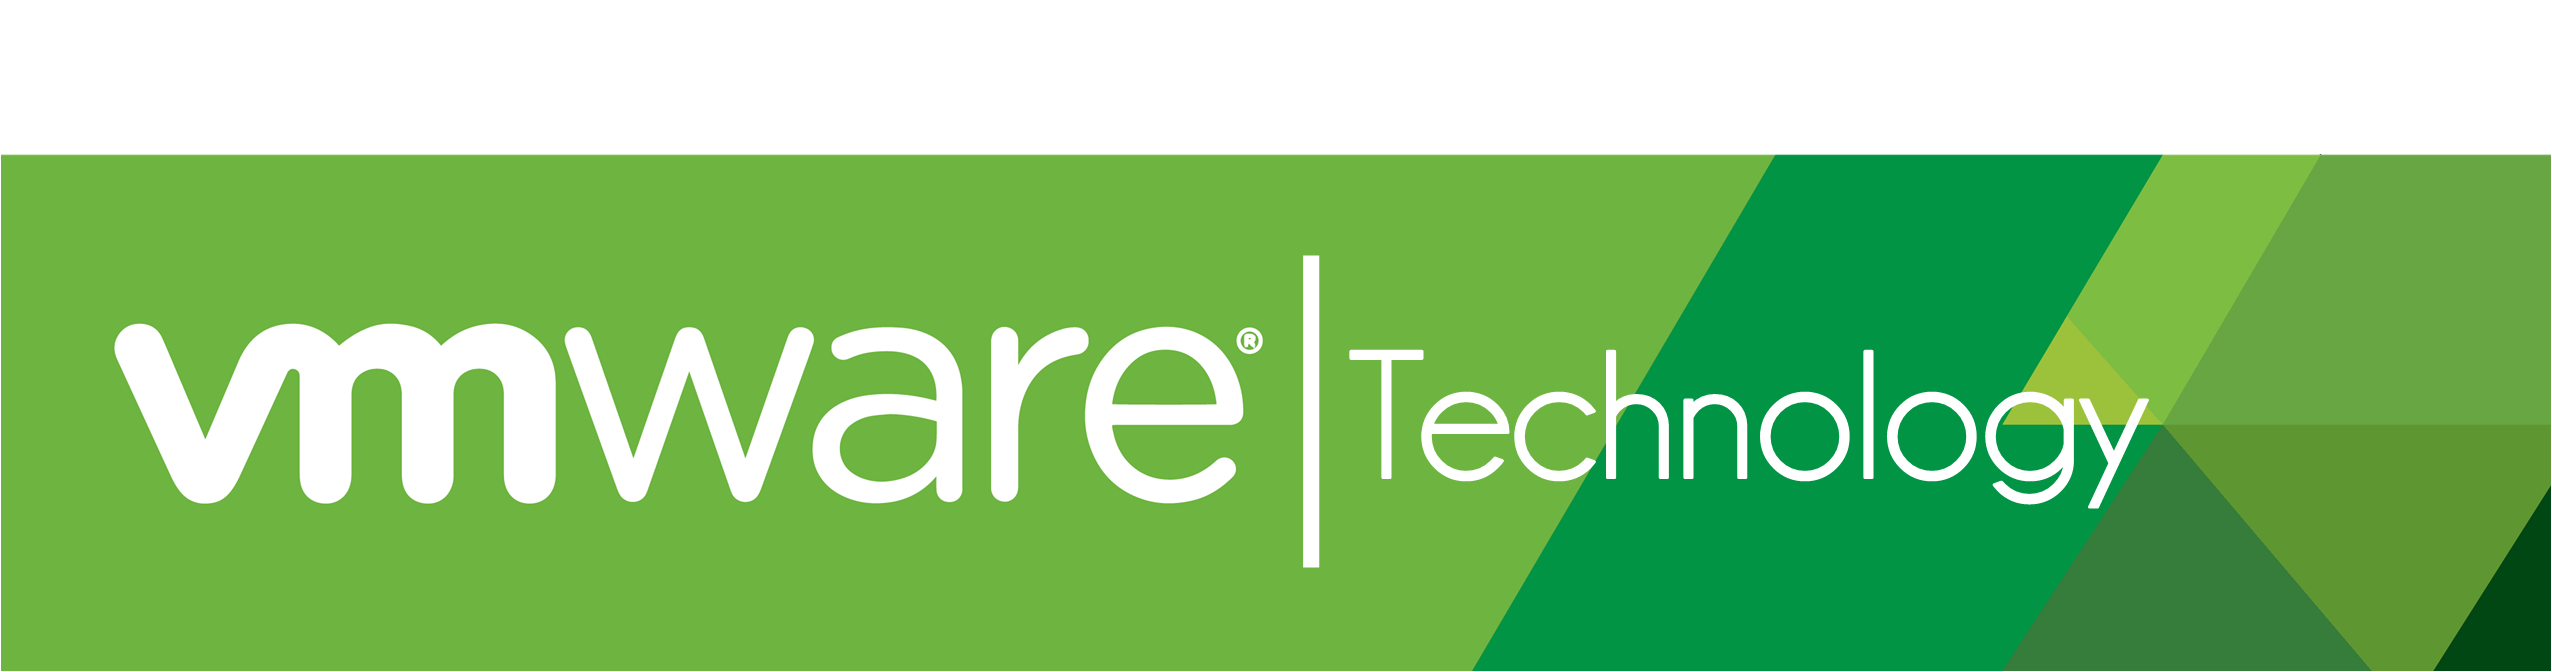 VMWare Technology Banner